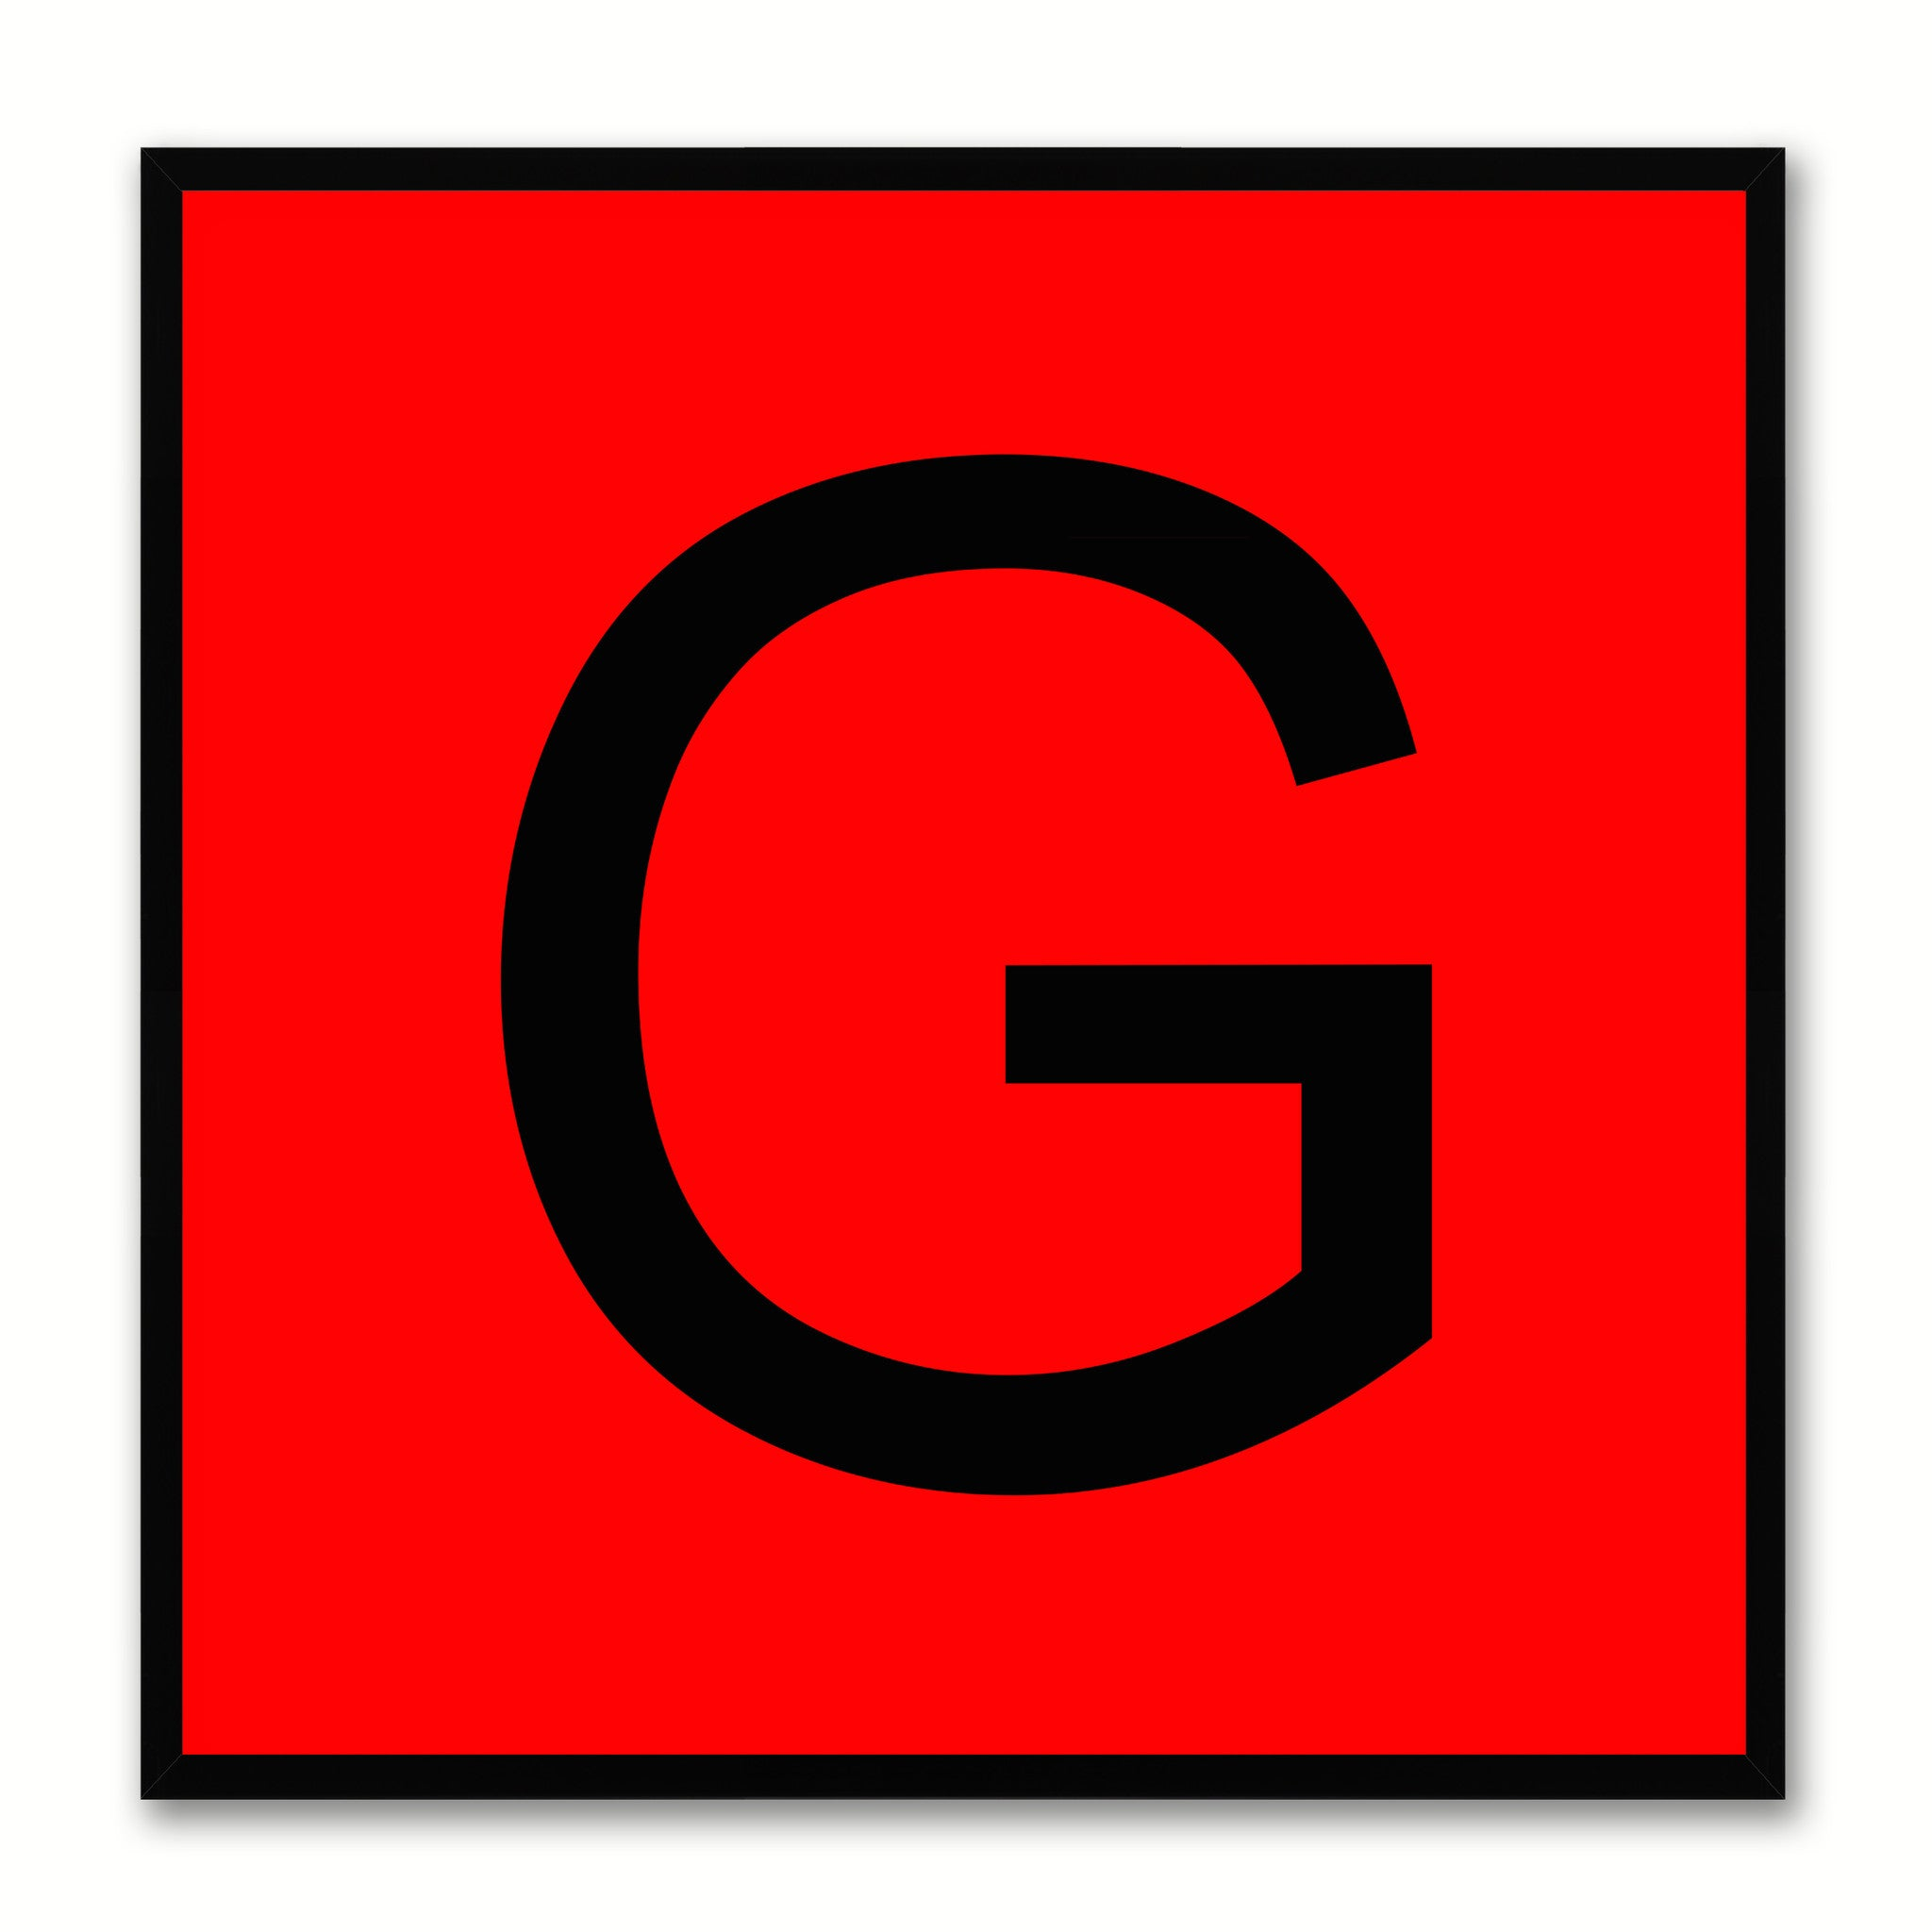 Alphabet G Red Canvas Print Black Frame Kids Bedroom Wall Décor Home Art